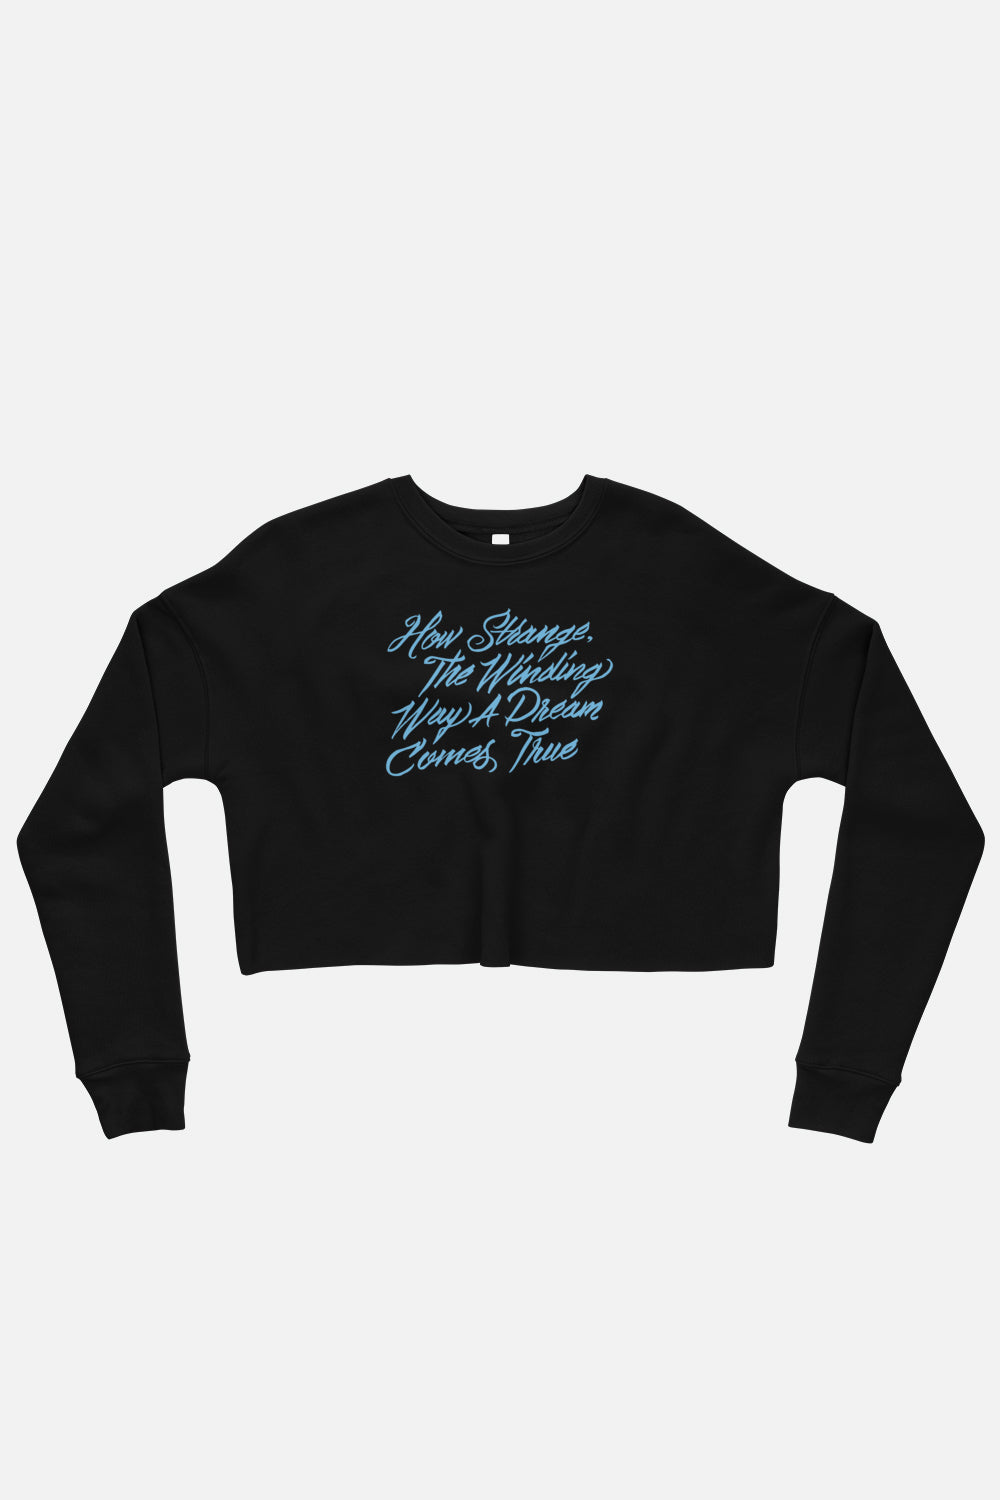 The Winding Way Fitted Crop Sweatshirt | The Invisible Life of Addie LaRue